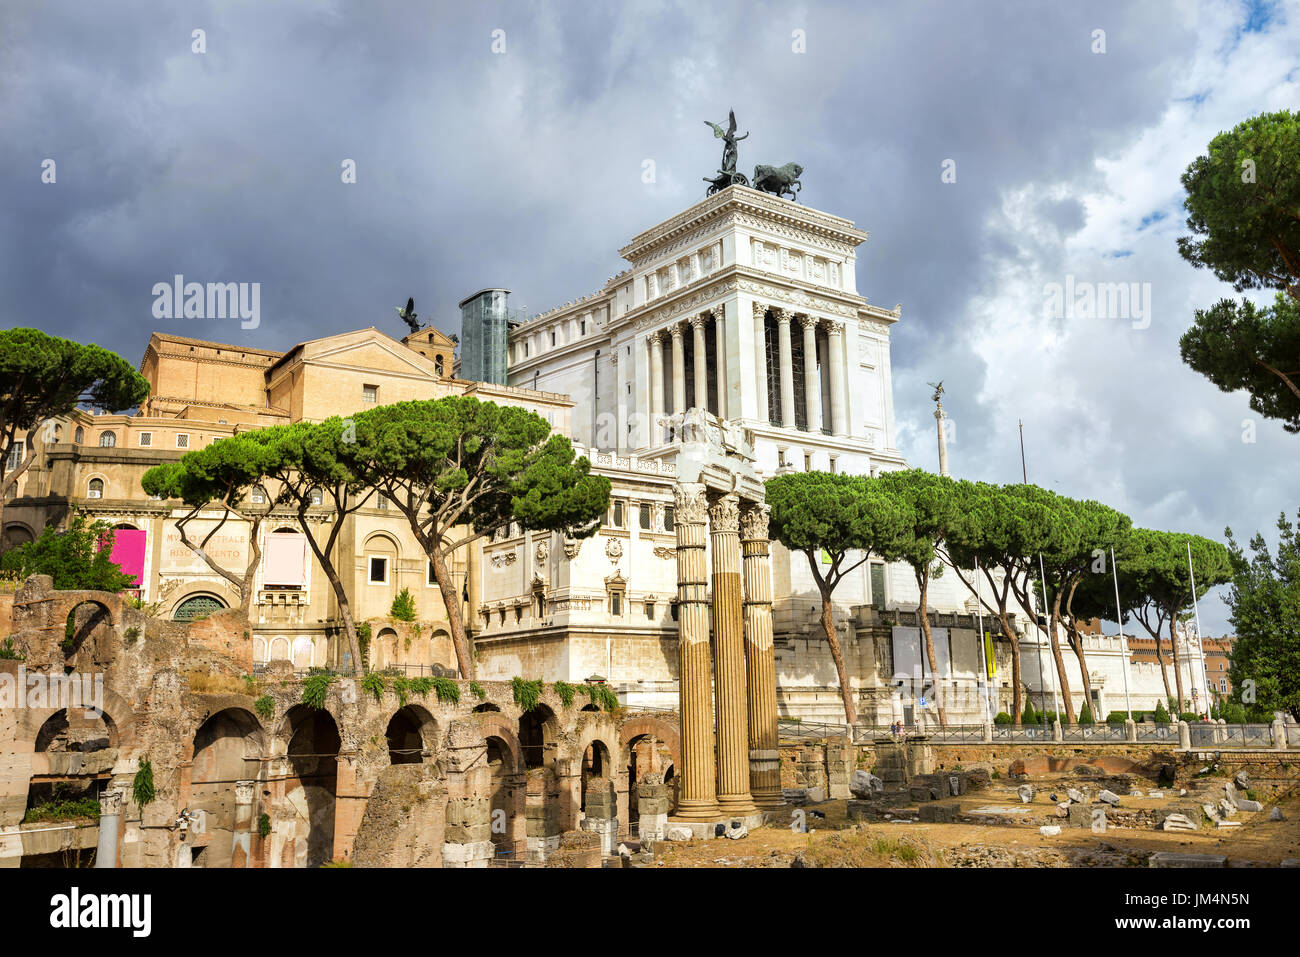 Ancient ruins of Roman Forum in Rome. Italy - Stock Image